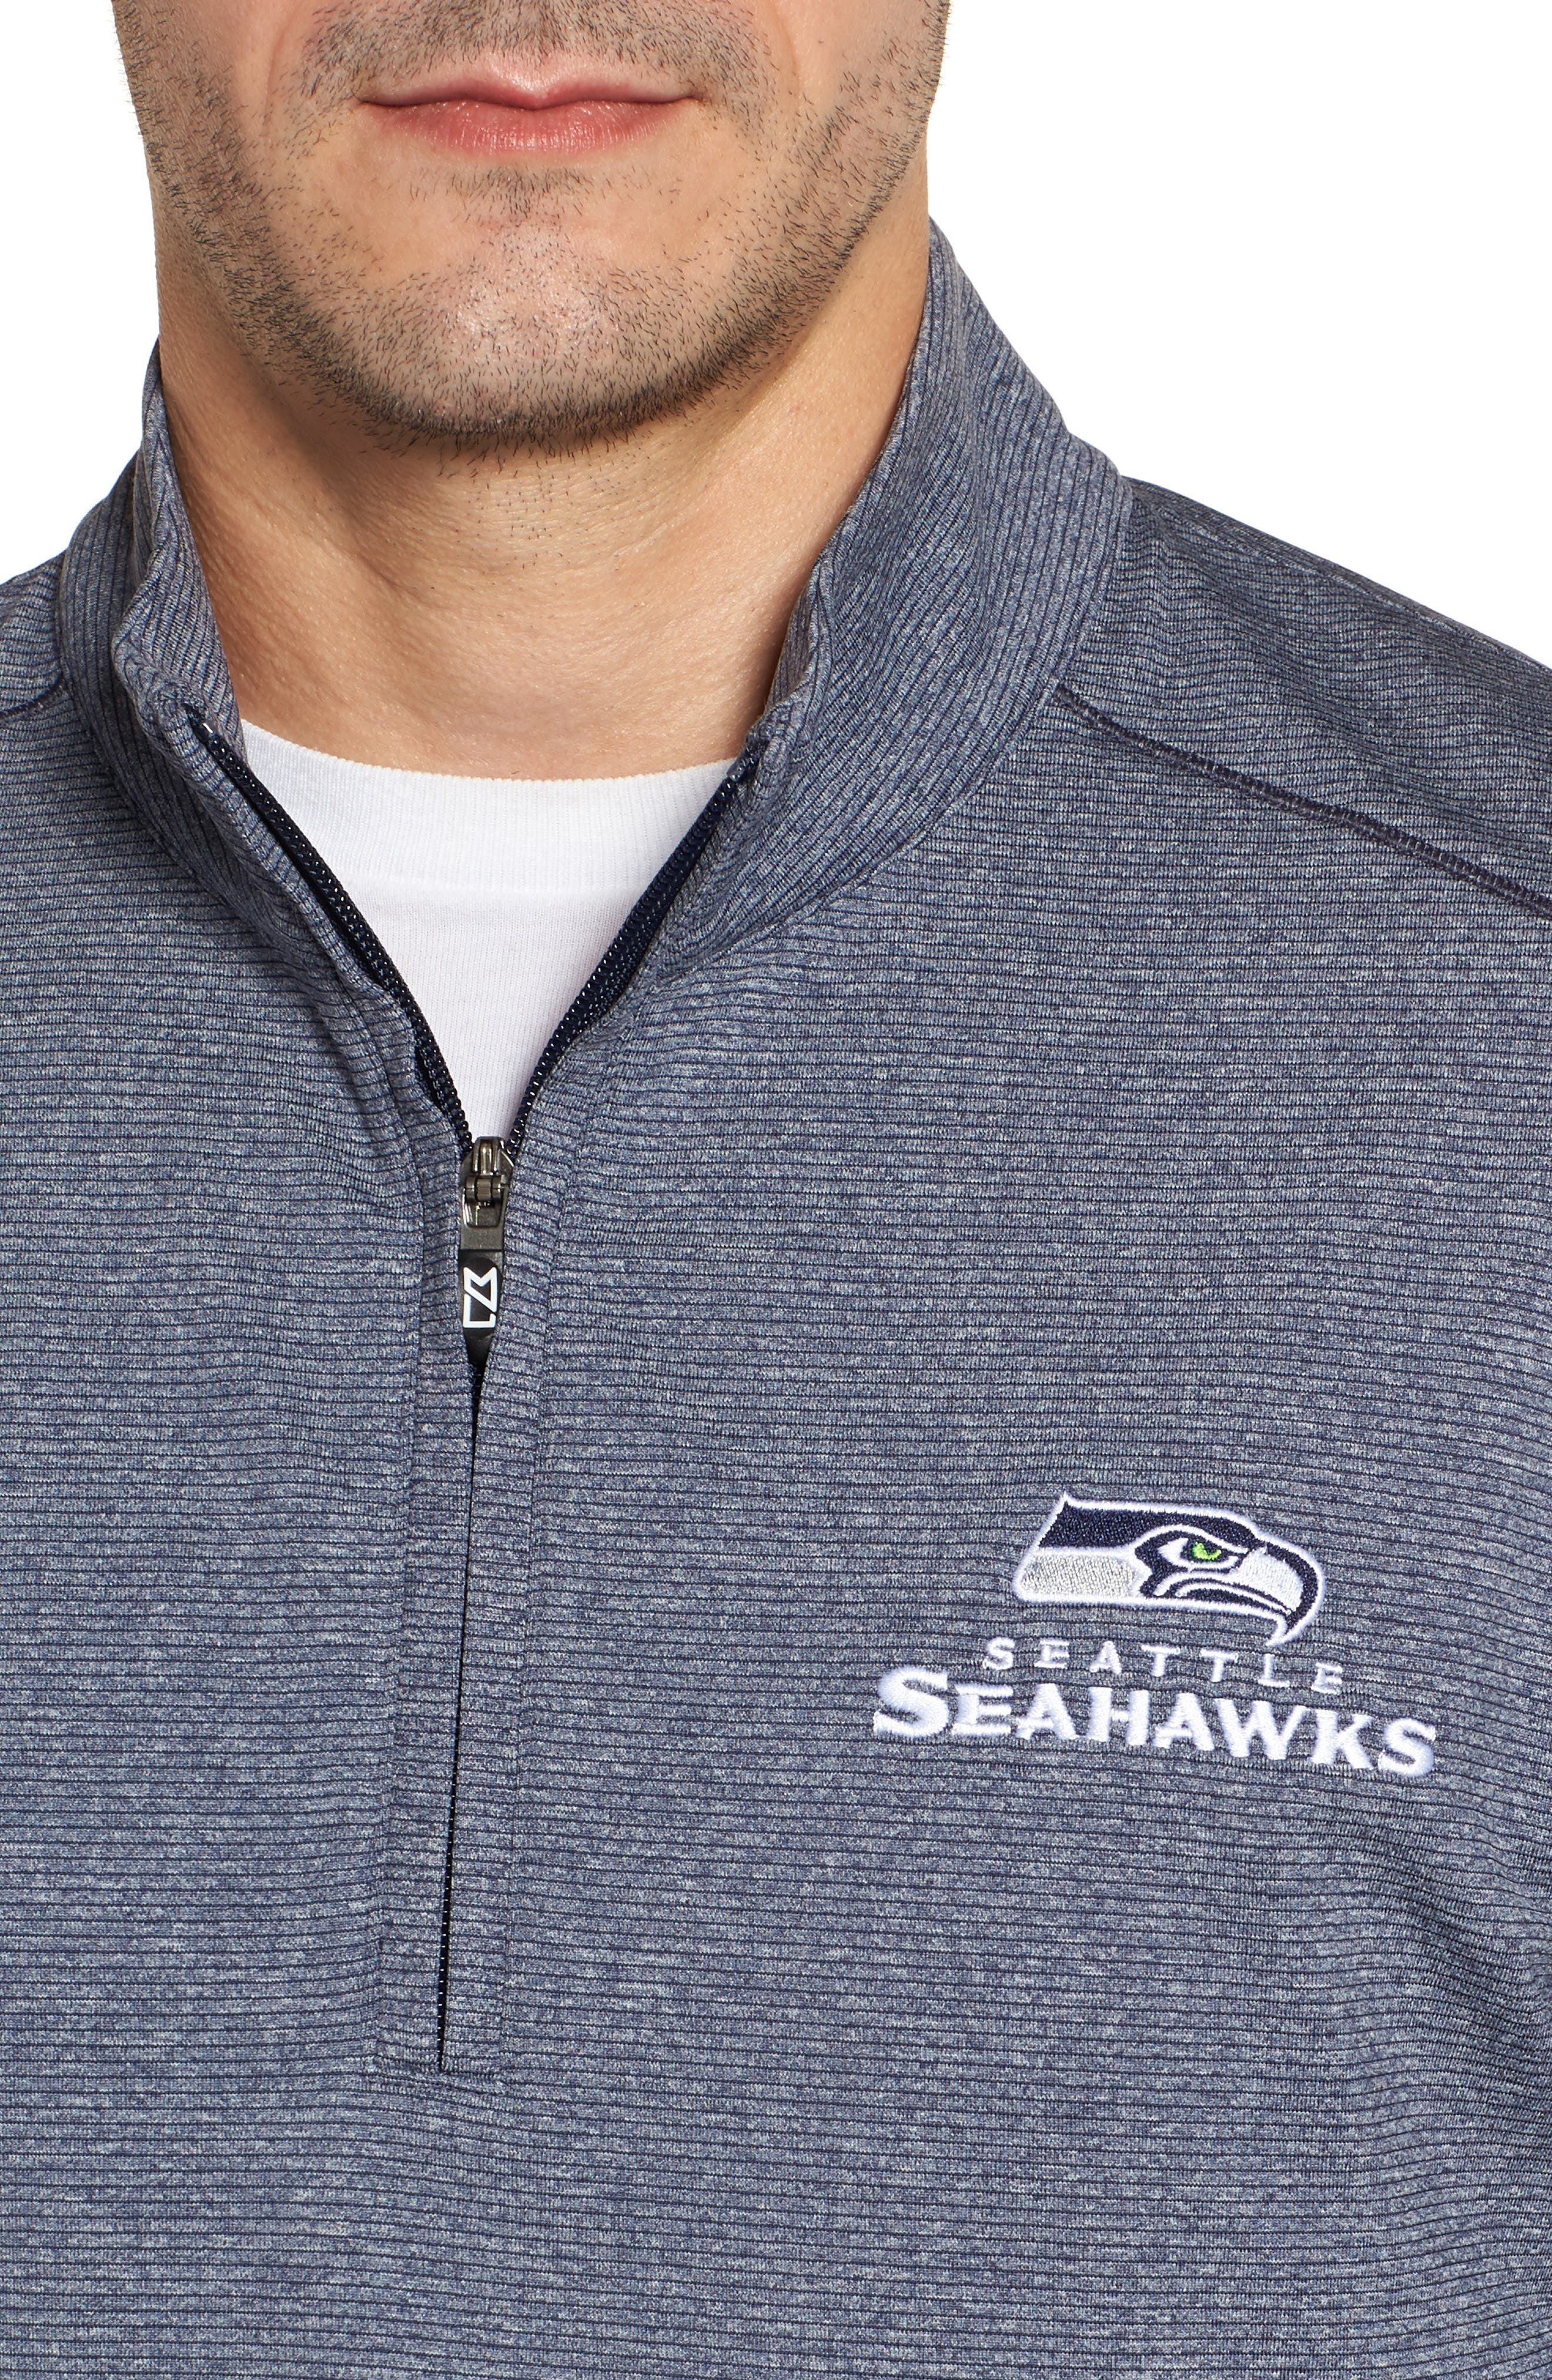 Seahawks Shoreline Quarter Zip Pullover,                             Alternate thumbnail 4, color,                             Liberty Navy Heather